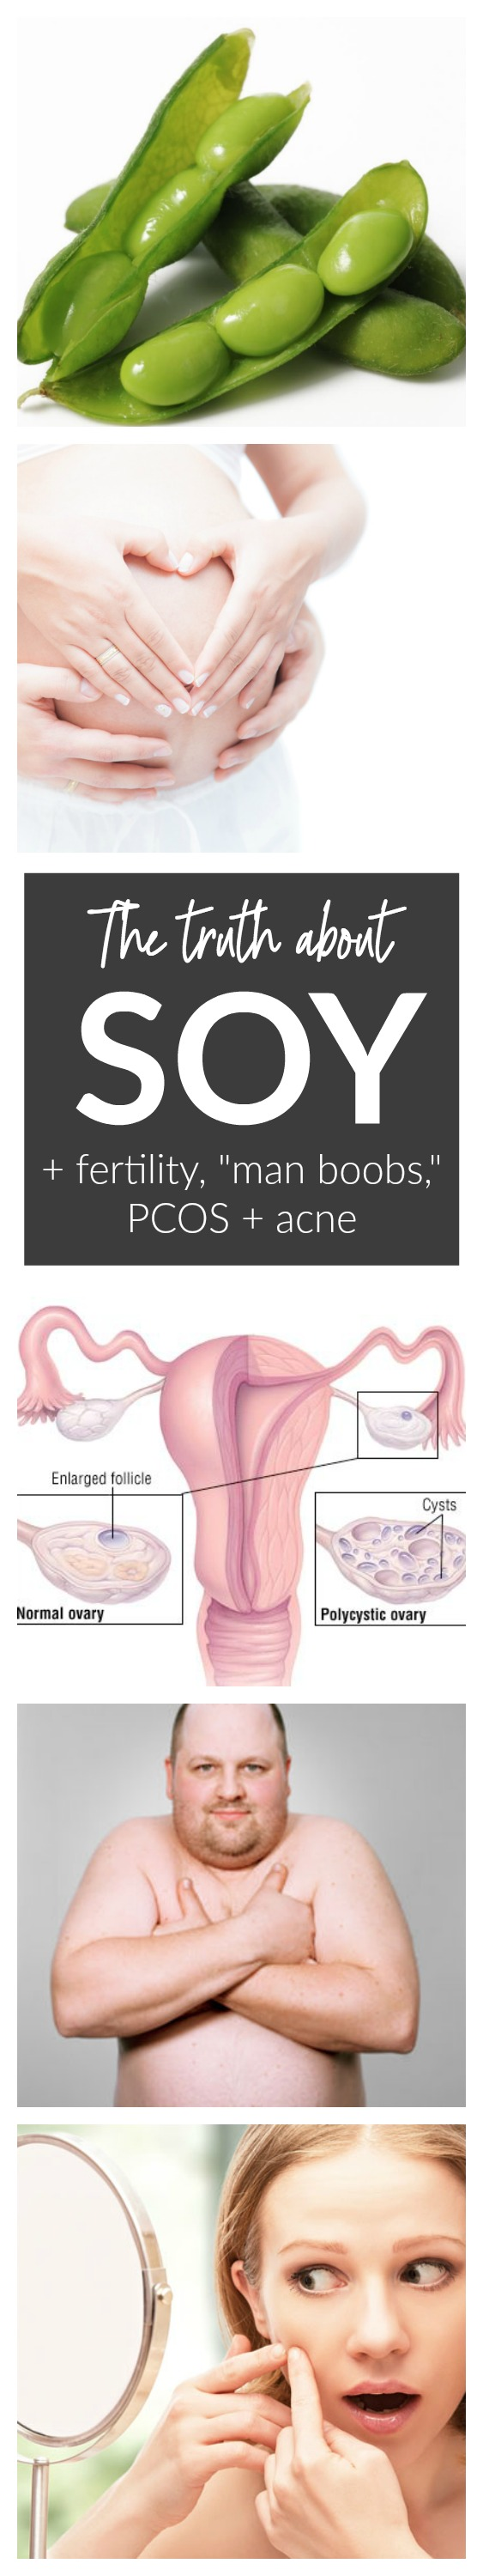 soy and fertility acne PCOS and man boobs